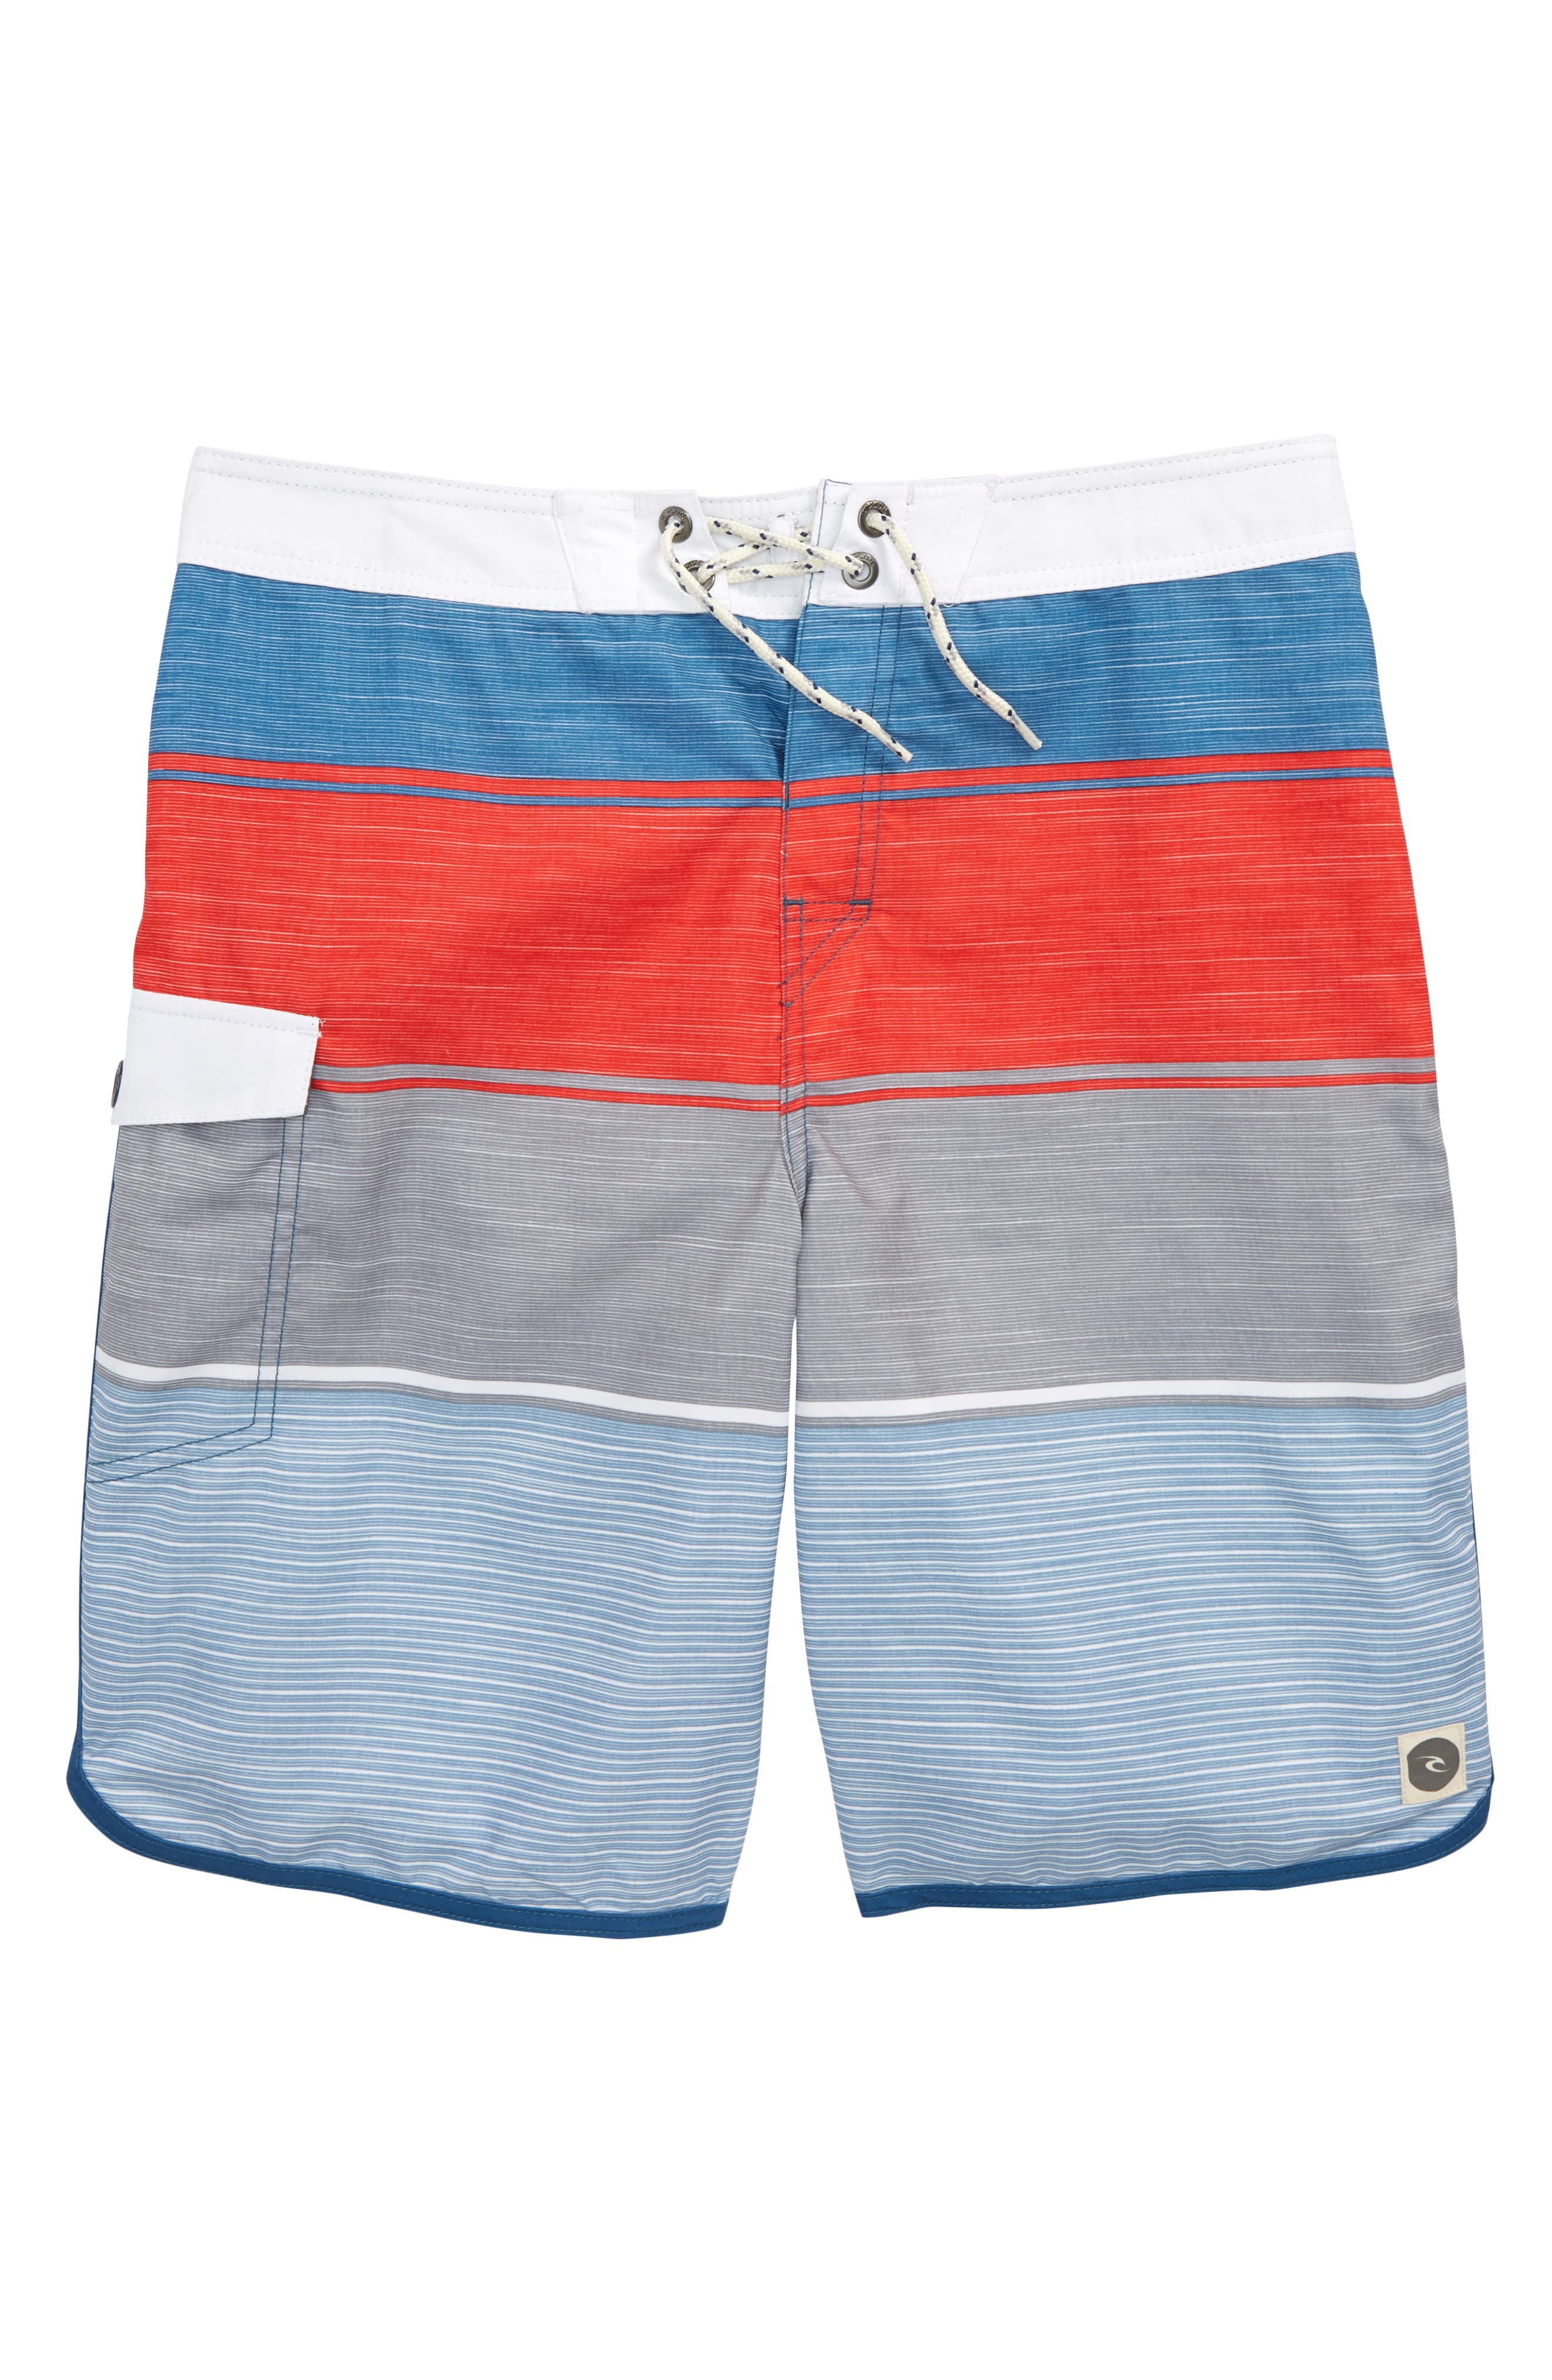 Alternate Image 1 Selected - Rip Curl Good Times Board Shorts (Big Boys)